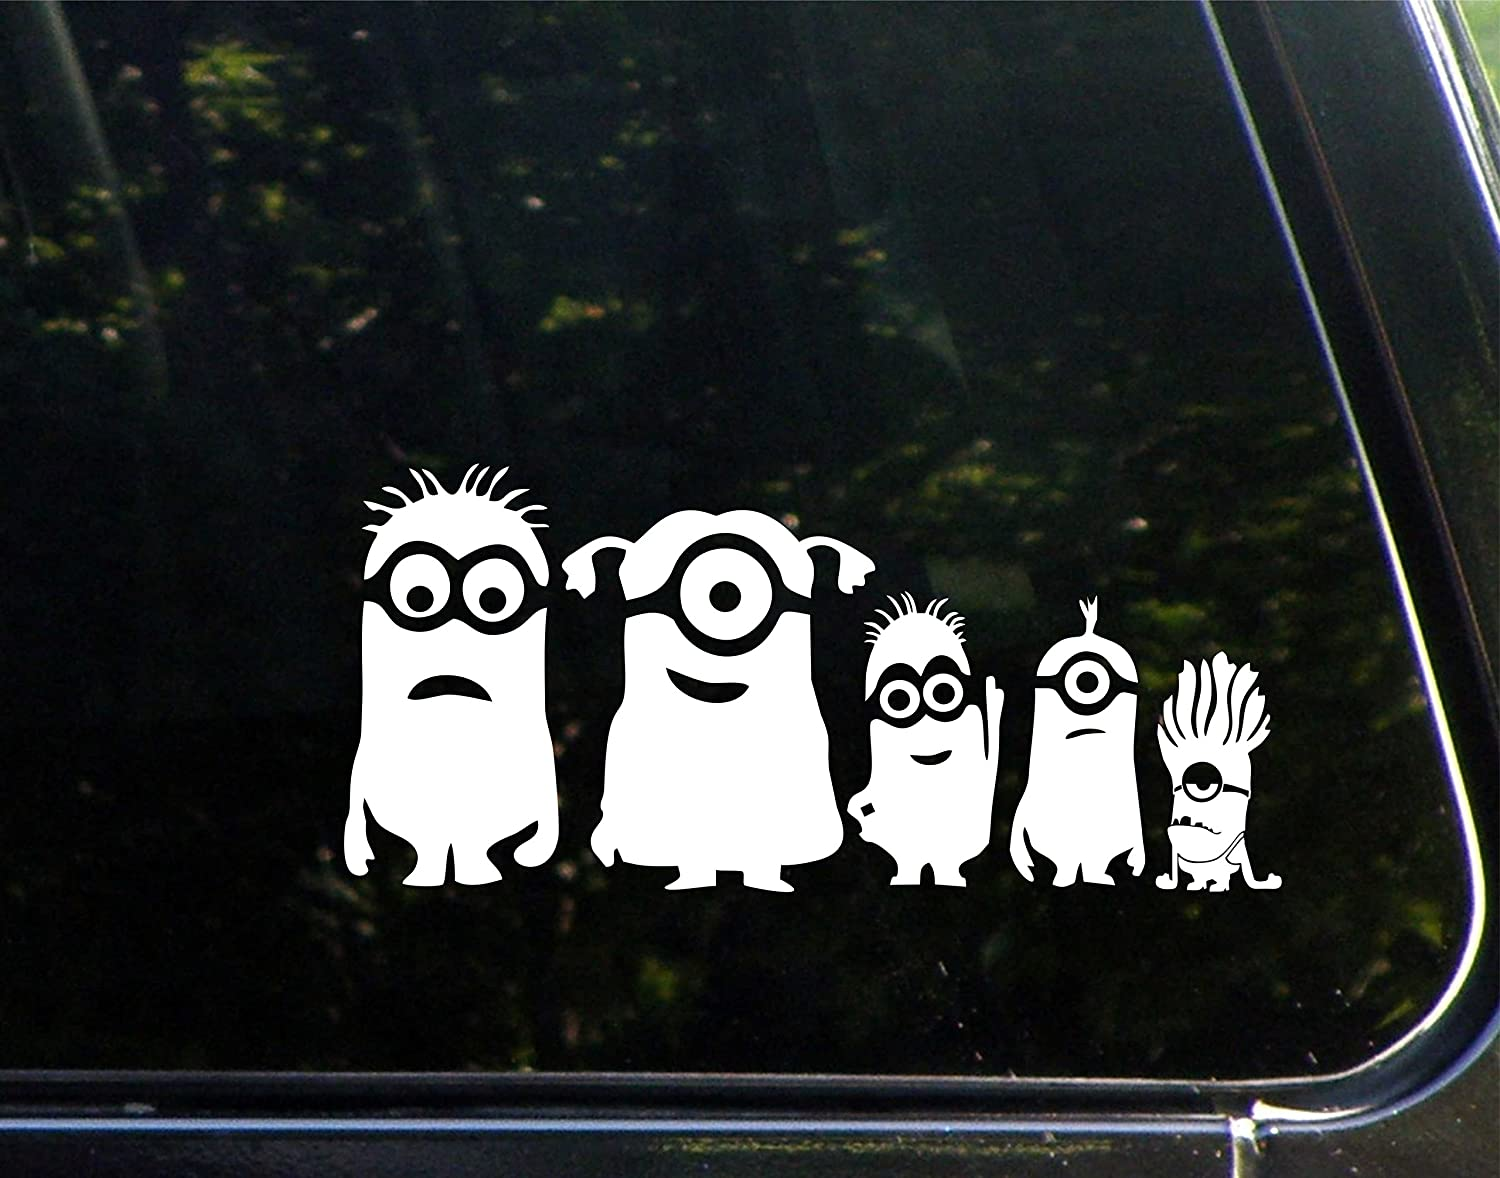 Amazoncom Minion Family  X  Vinyl Die Cut Decal Bumper - Minion custom vinyl decals for car